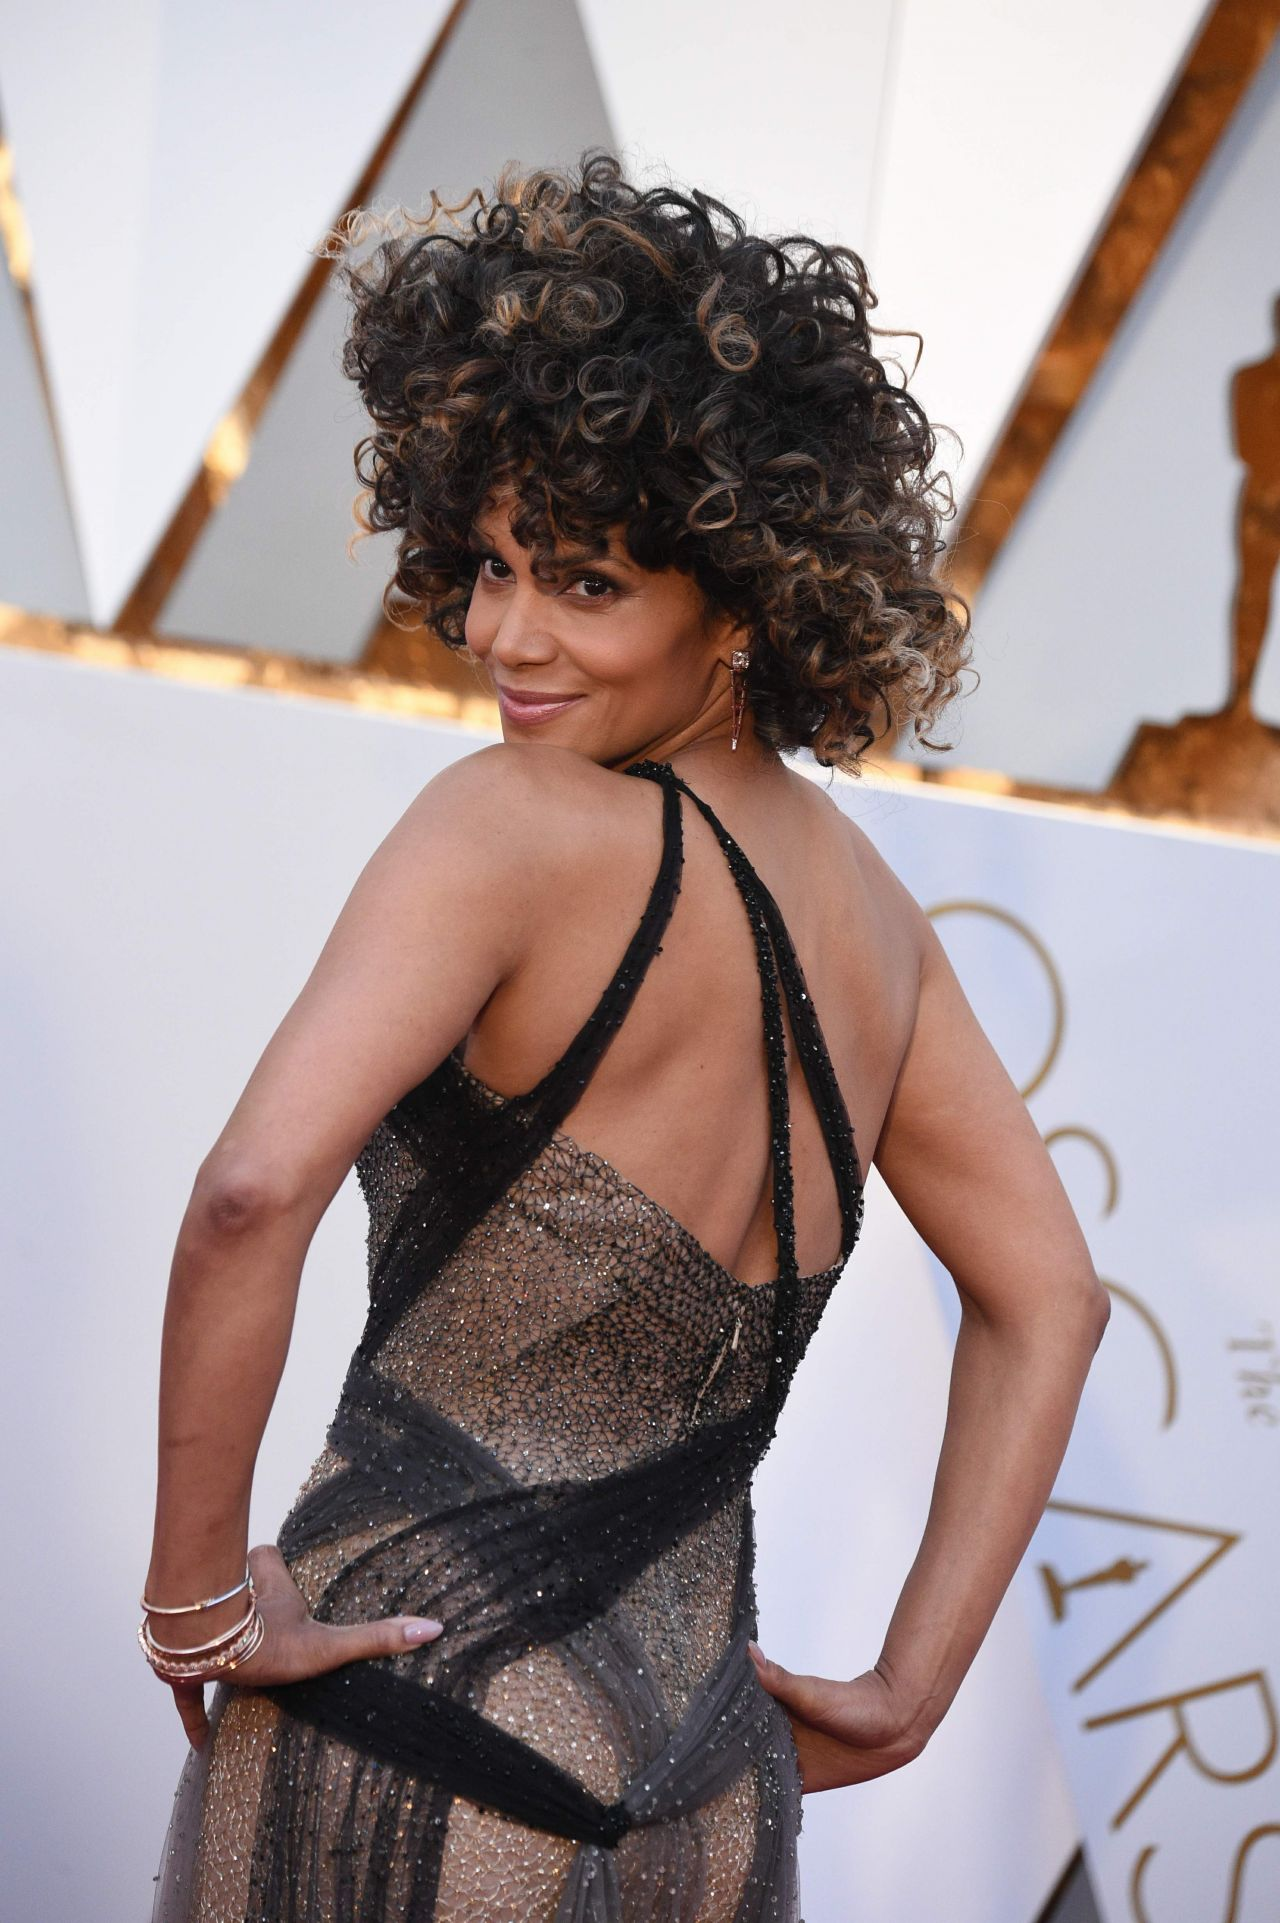 Screen Actors Guild Awards Snub Spells Bad News Joel Edgerton S Academy Award Hopes Loving besides Oscar Host Seth Macfarlane Joins Emma likewise Kuttram Kadithal In Oscar Nomination Fray as well What Bafta Noms Mean For The Oscars likewise Halle Berry Oscars 2017 Red Carpet Hollywood 704717. on oscar nominations 2016 announcement